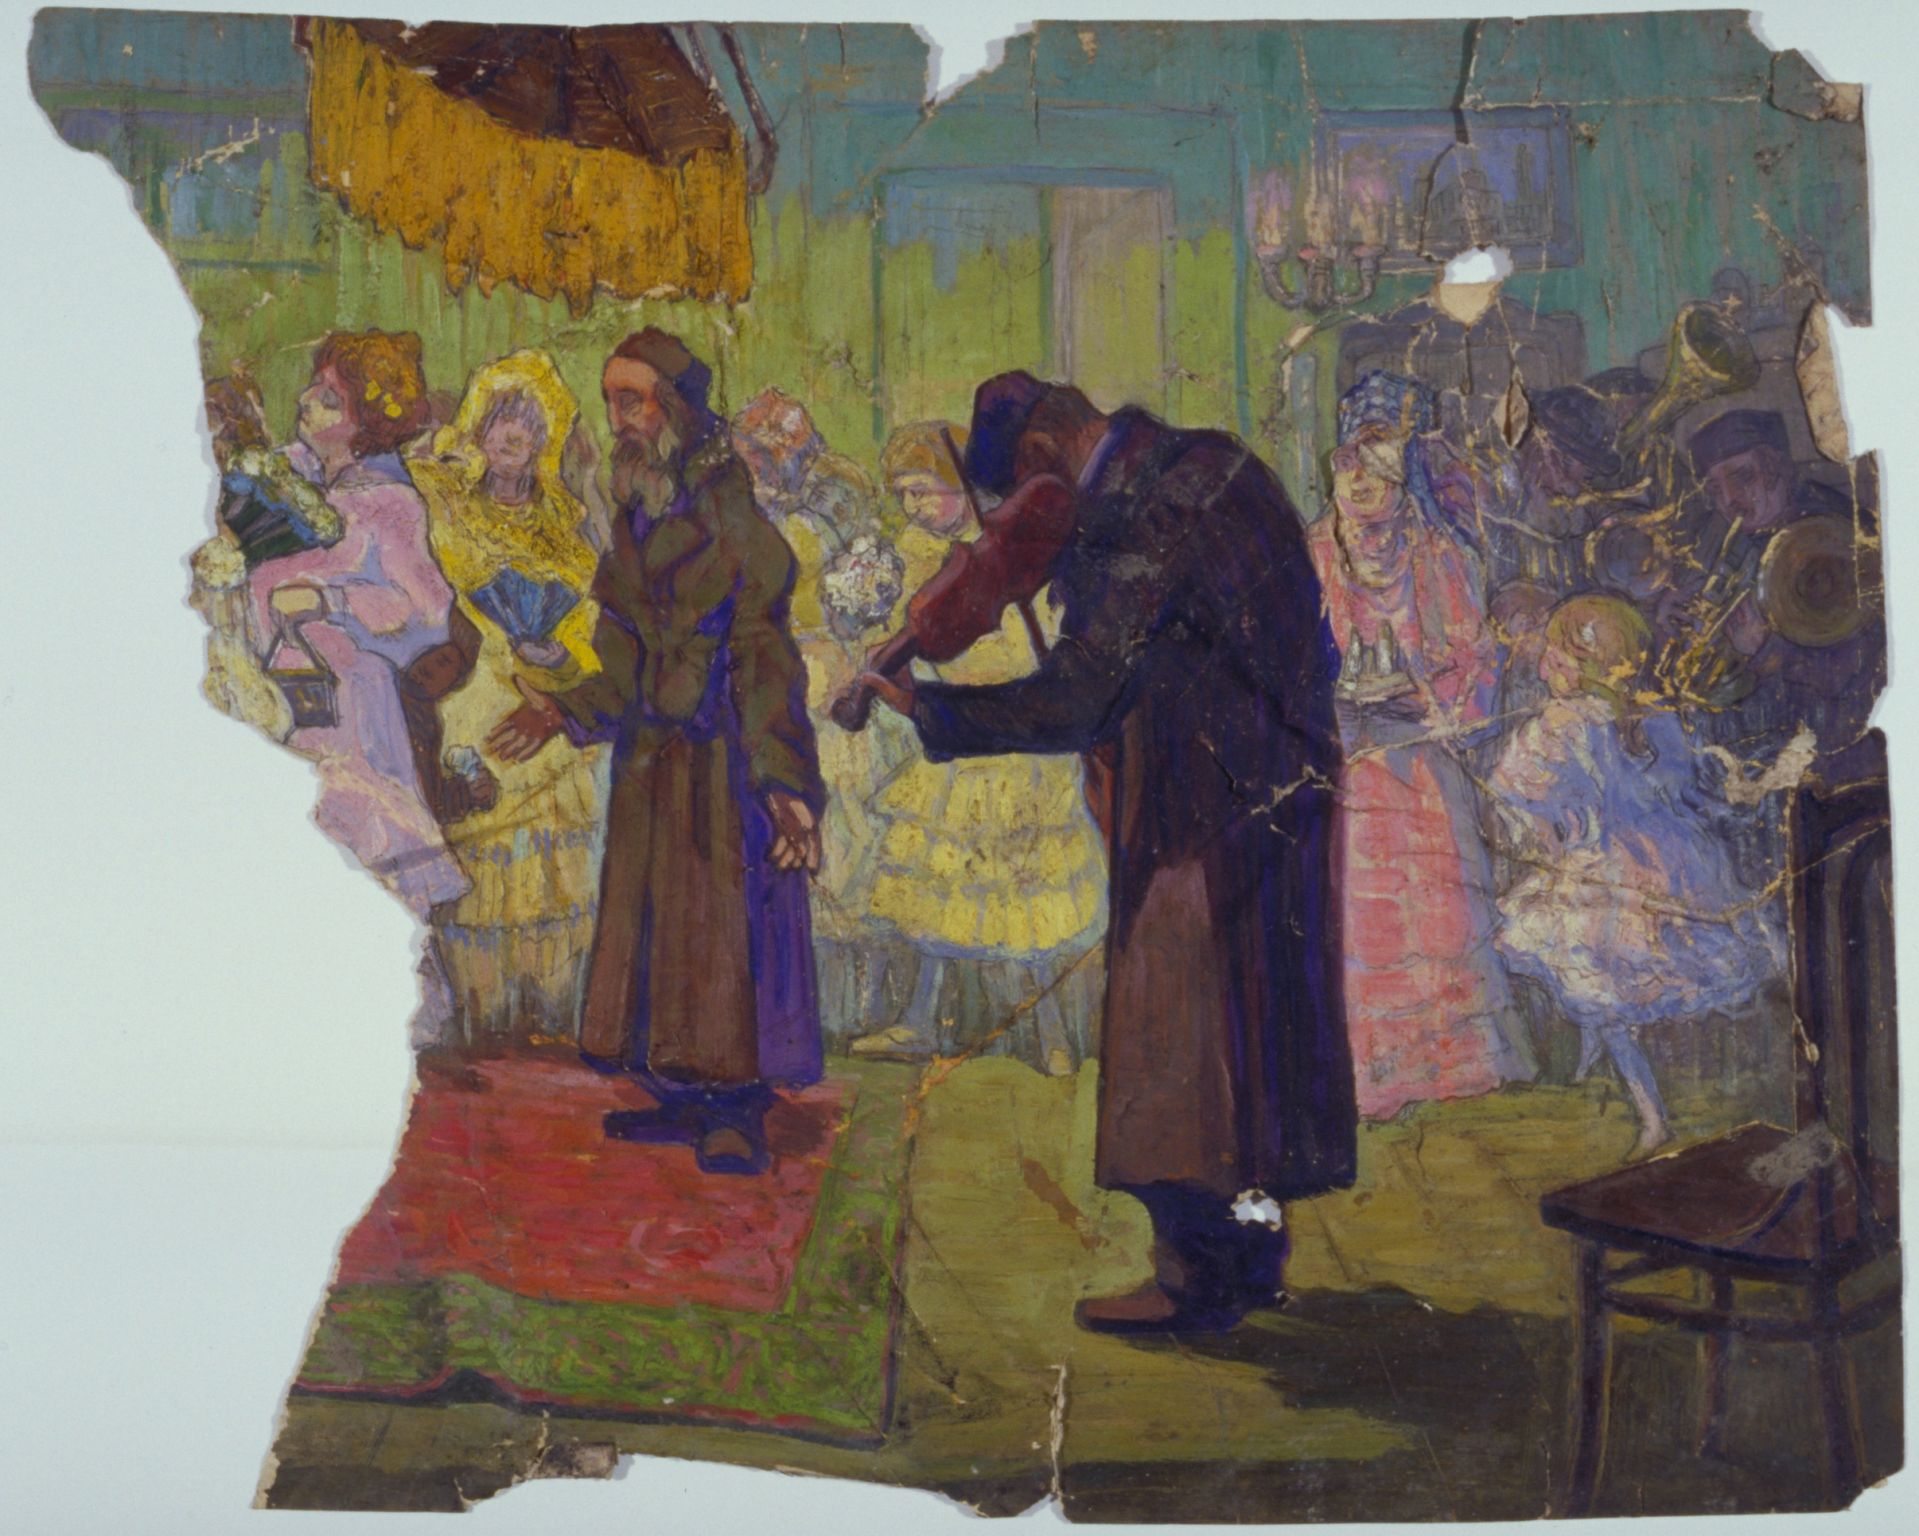 Moshe Rynecki's painting of a wedding tells its story despite the damage inflicted on it.